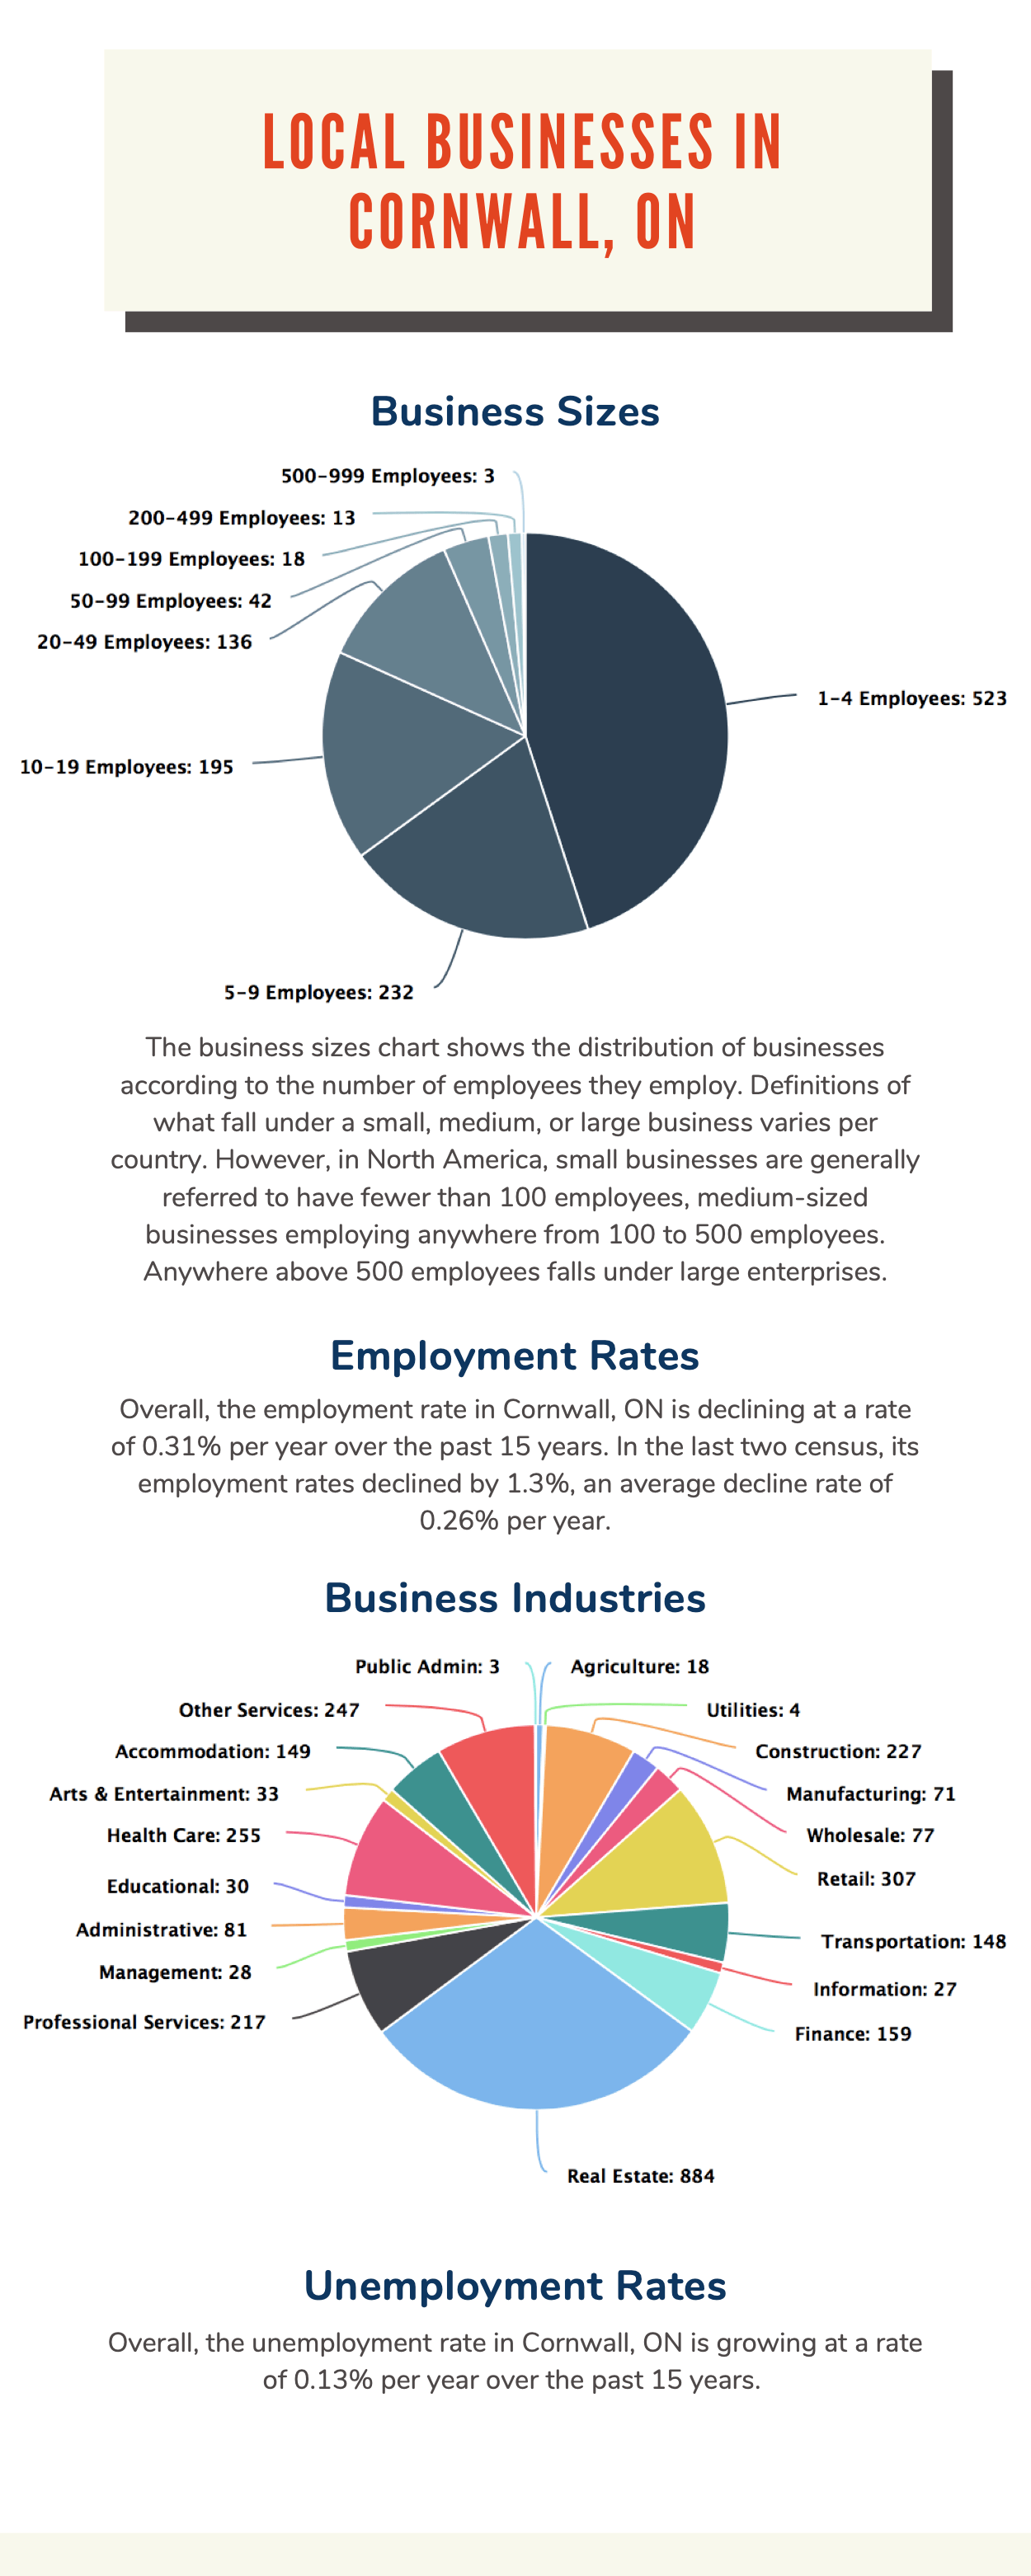 Local Businesses in Cornwall